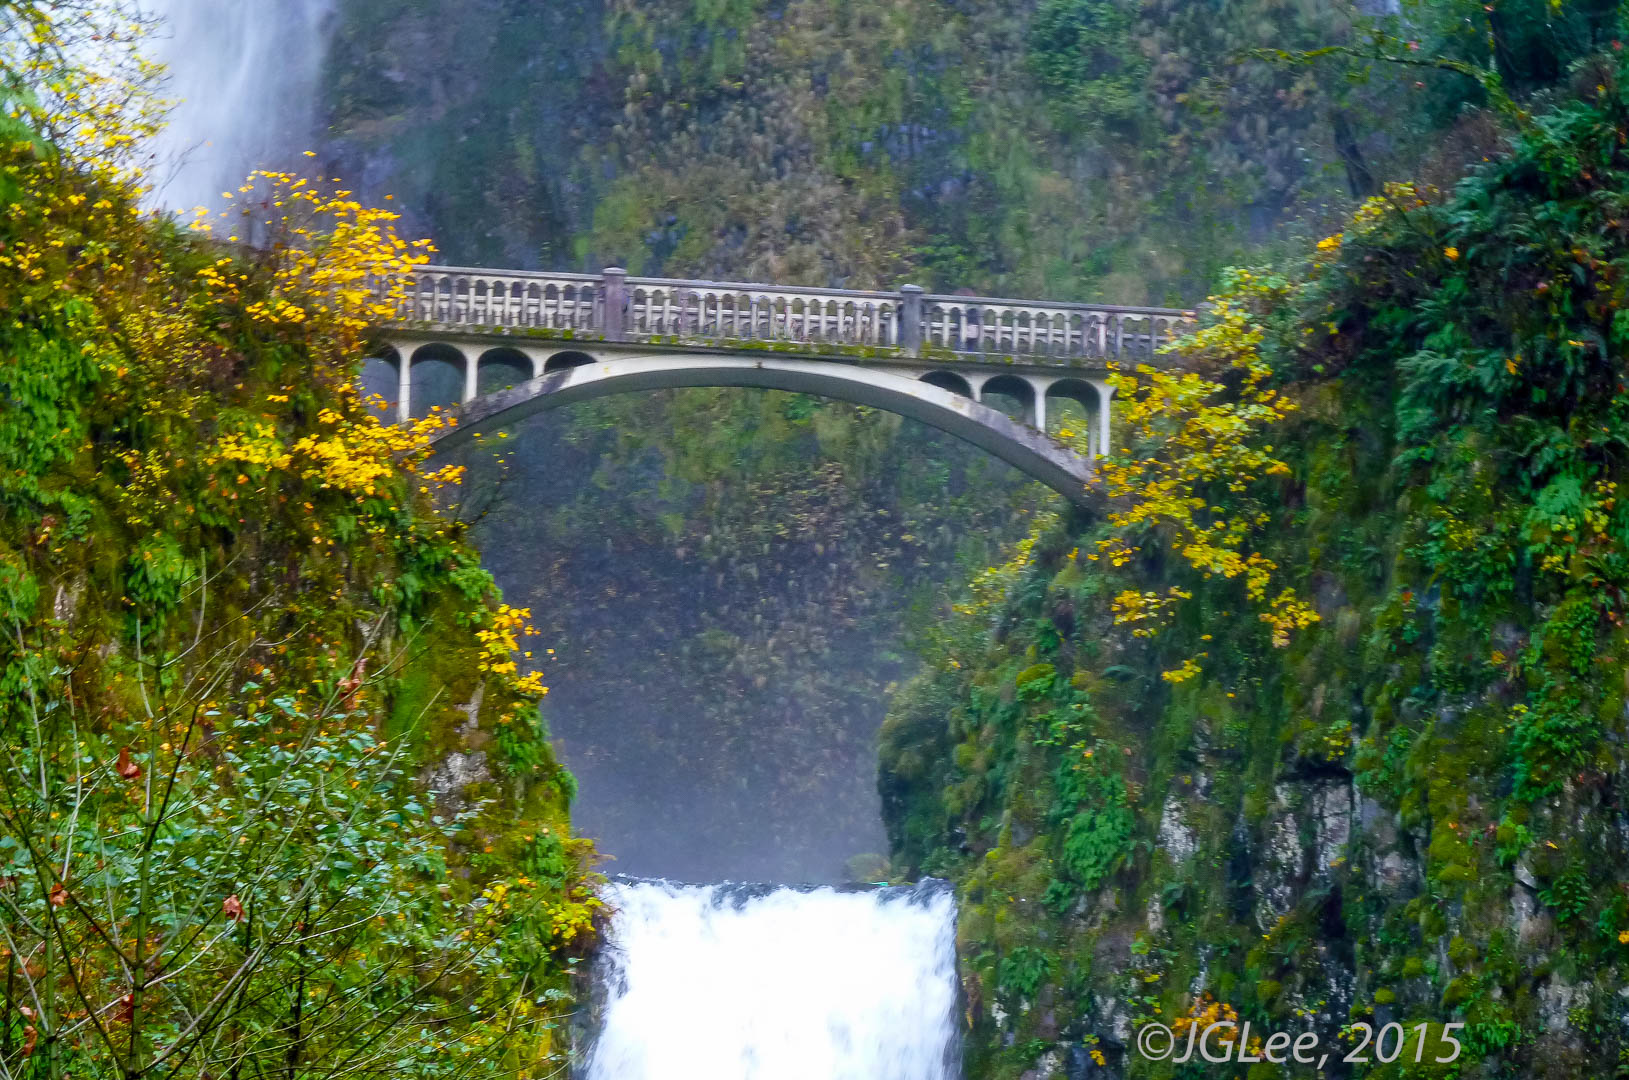 The Bridge at Multnomah Falls